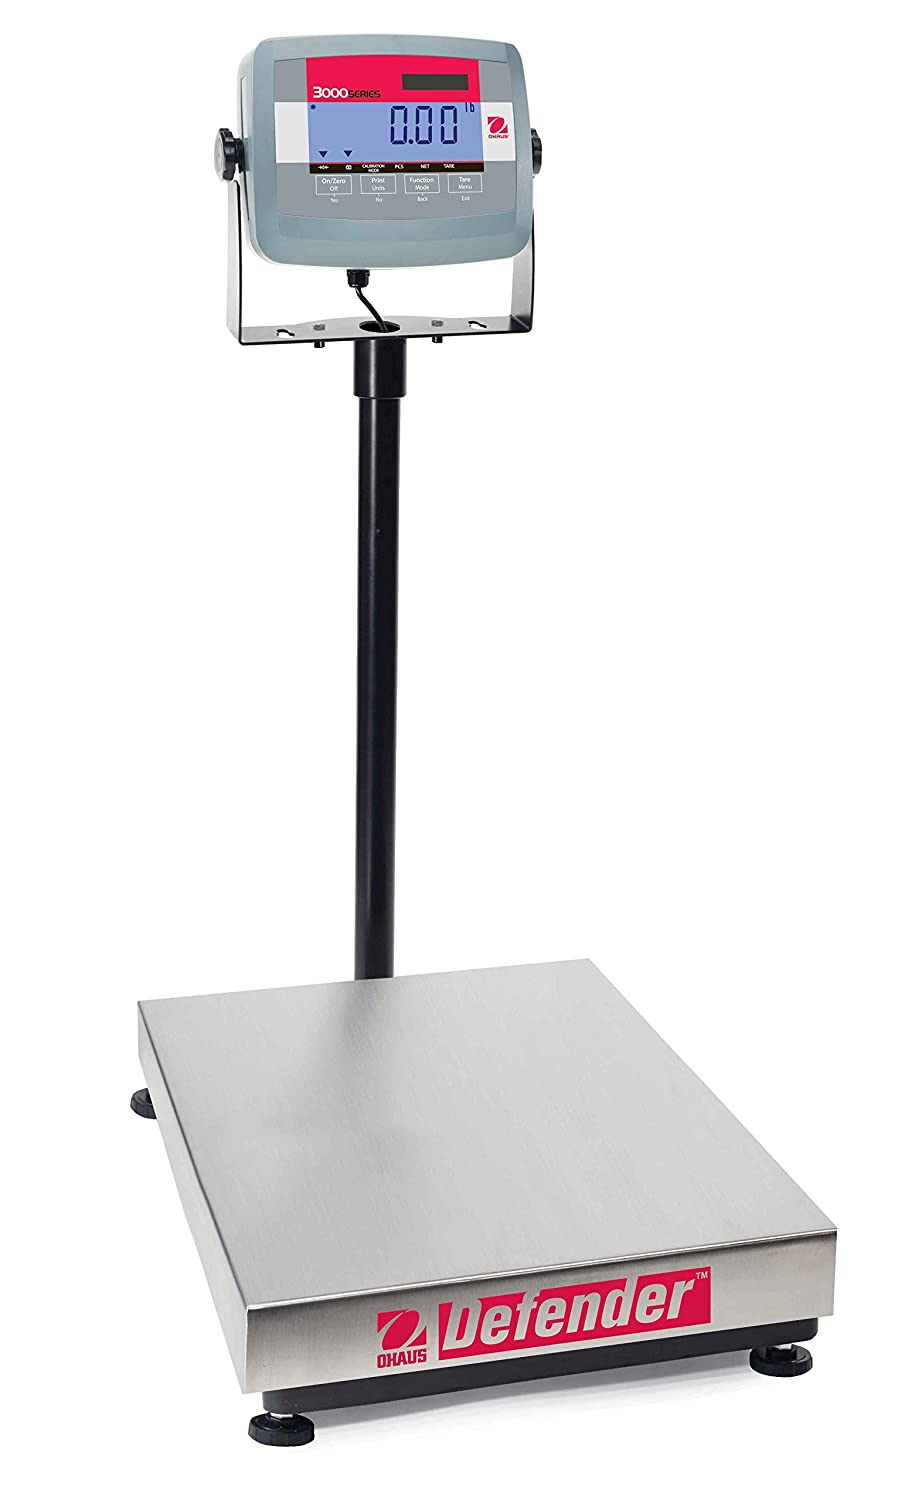 Ohaus Defender 3000standard Series Bench scale, Ohaus Defender: d31p30br-m